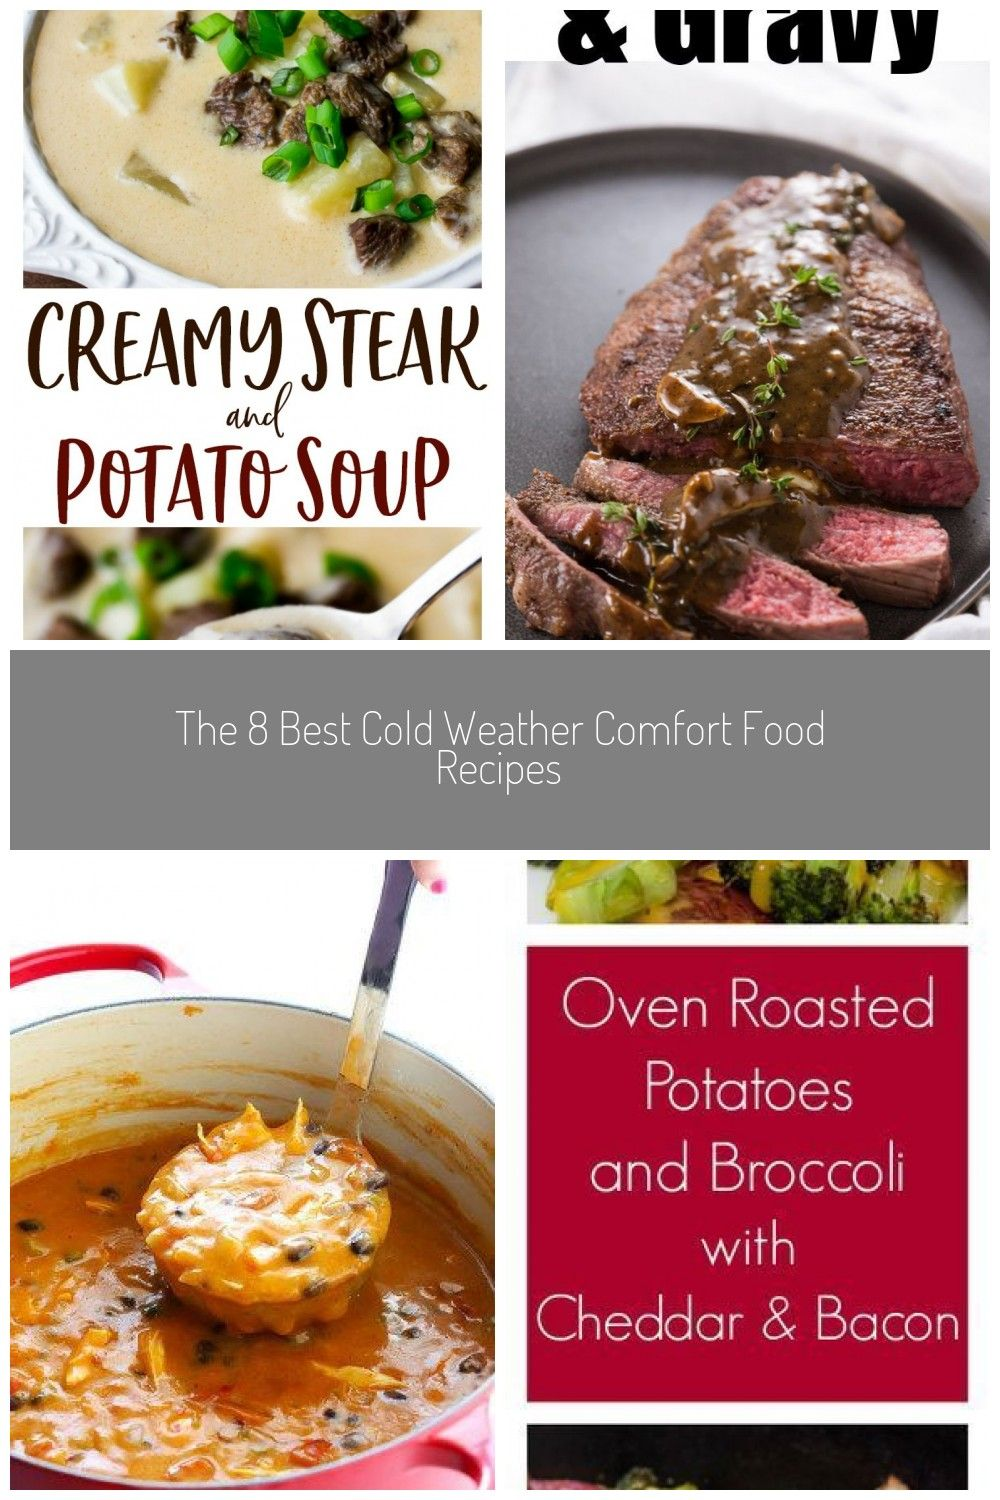 Creamy Steak and Potato Soup - the perfect cold weather comfort food recipe! This is an easy recipe that's hearty, filling, and delicious! Have it when you need a filling lunch, or pair it with a salad for a quick dinner! | #dlbrecipes #soup #comfortfood #potatosoup #cold weather comfort food recipes Creamy Steak and Potato Soup #coldweatherrecipes